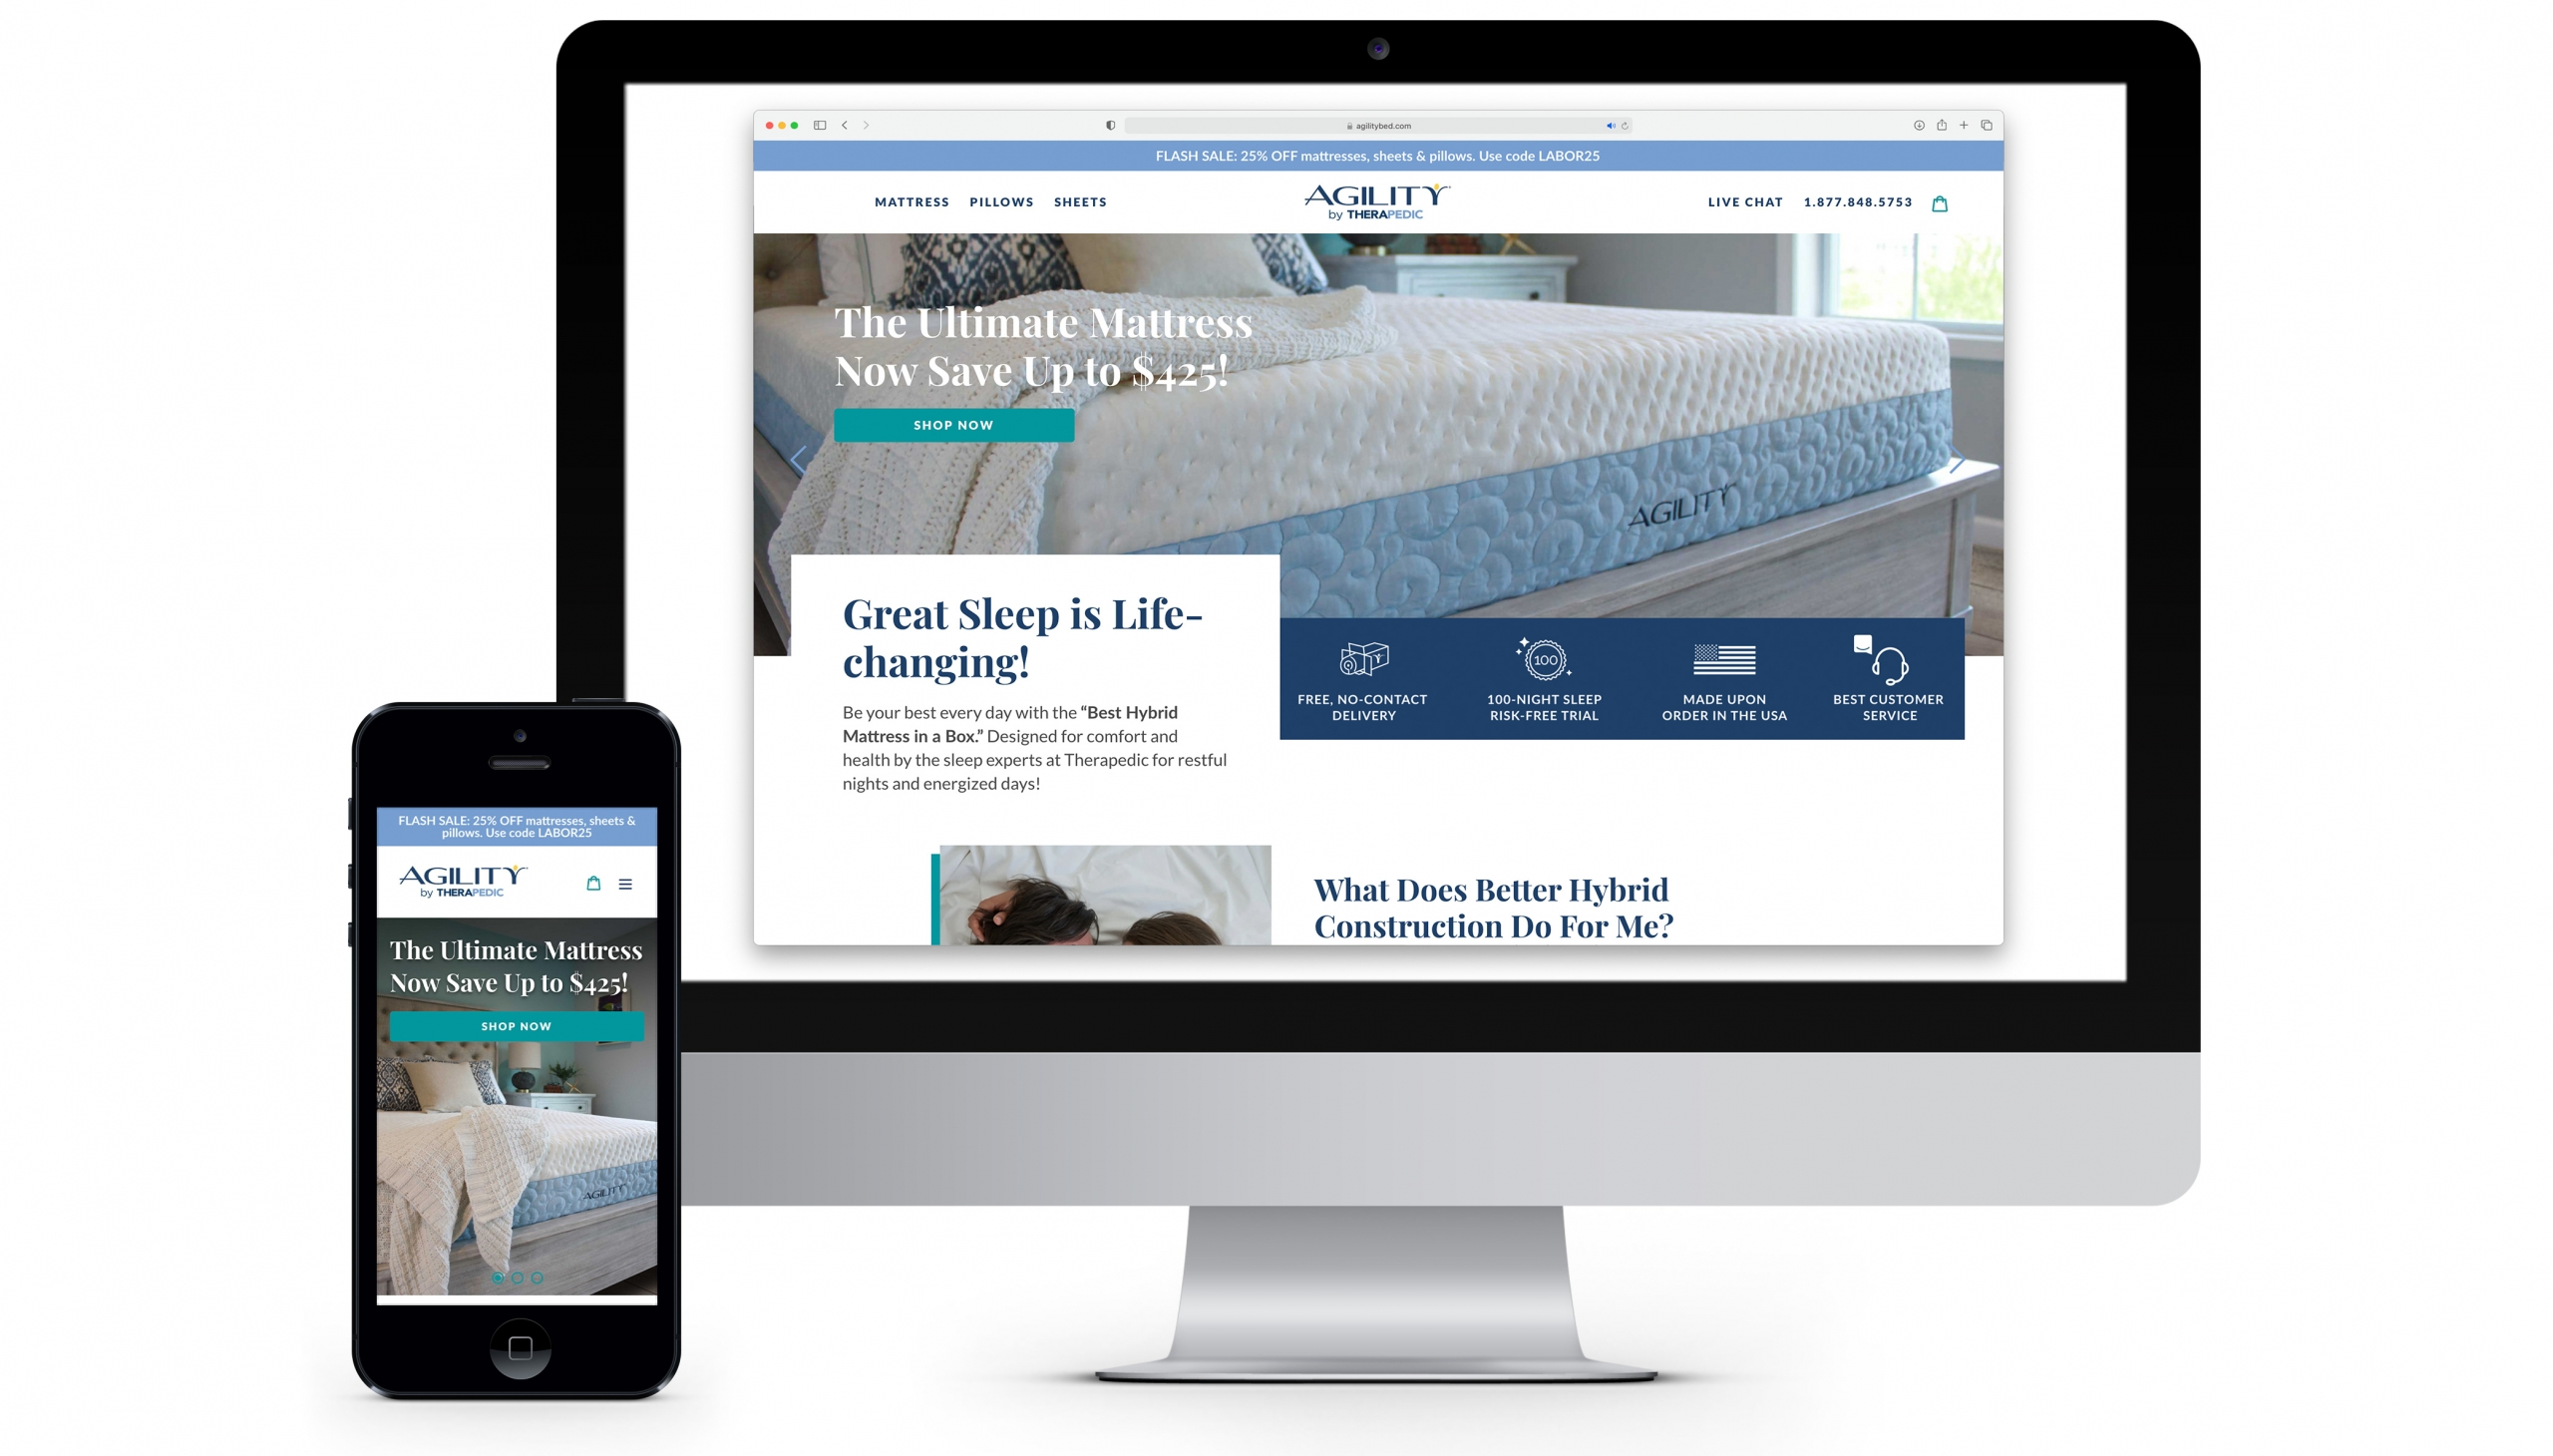 agilitybed.com has an editorial lifestyle look and feel that focuses on the emotional benefits of a good night's sleep supported by technical information about the products to provide the customer with everything they are looking for.